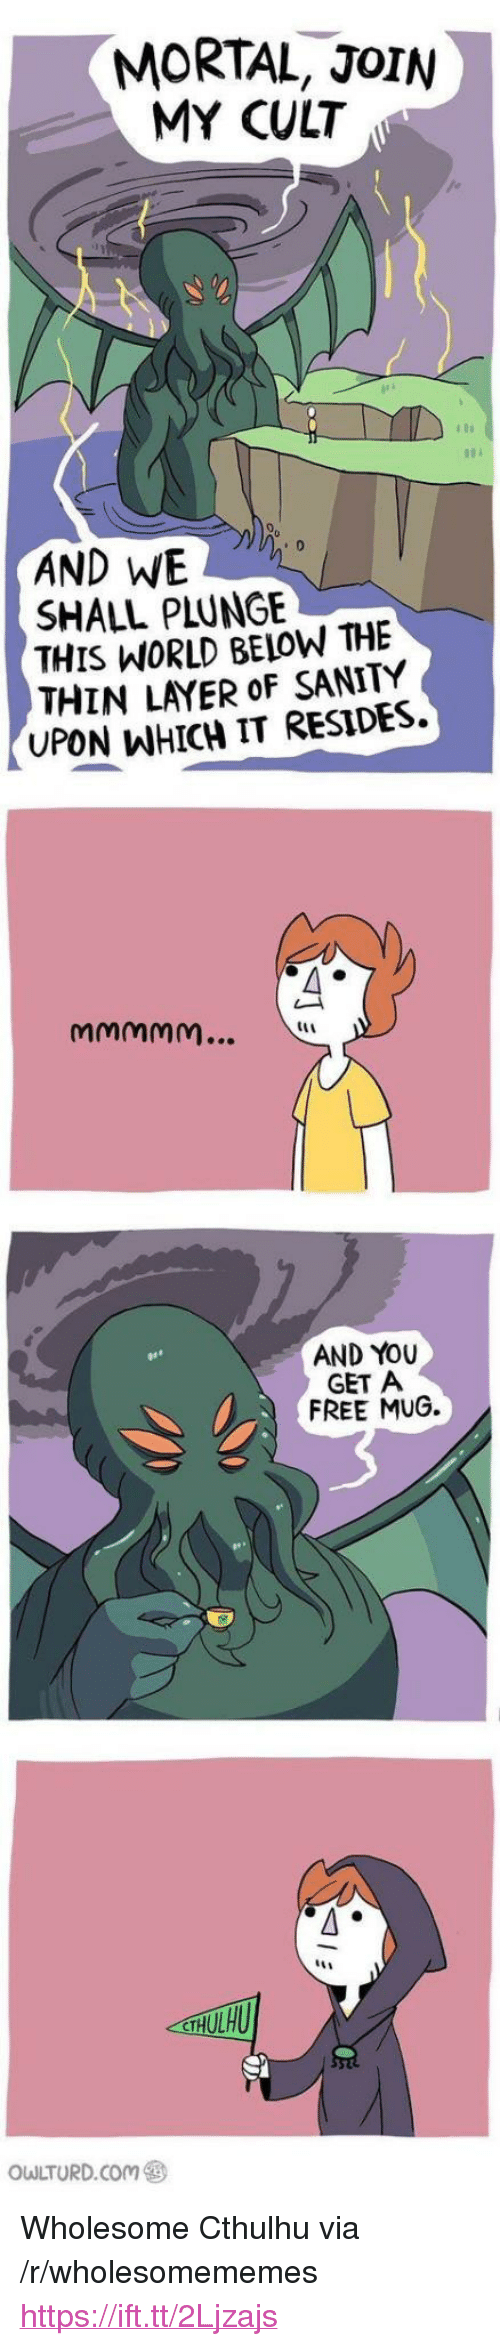 """Cthulhu: MORTAL, JoIN  MY CULT  AND WE  SHALL PLUNGE  THIS WORLD BELOW THE  THIN LAYER oF SANITY  UPON WHICH IT RESIDES  AND YOU  GET A  FREE MUG.  owLTURD.com ㊧ <p>Wholesome Cthulhu via /r/wholesomememes <a href=""""https://ift.tt/2Ljzajs"""">https://ift.tt/2Ljzajs</a></p>"""